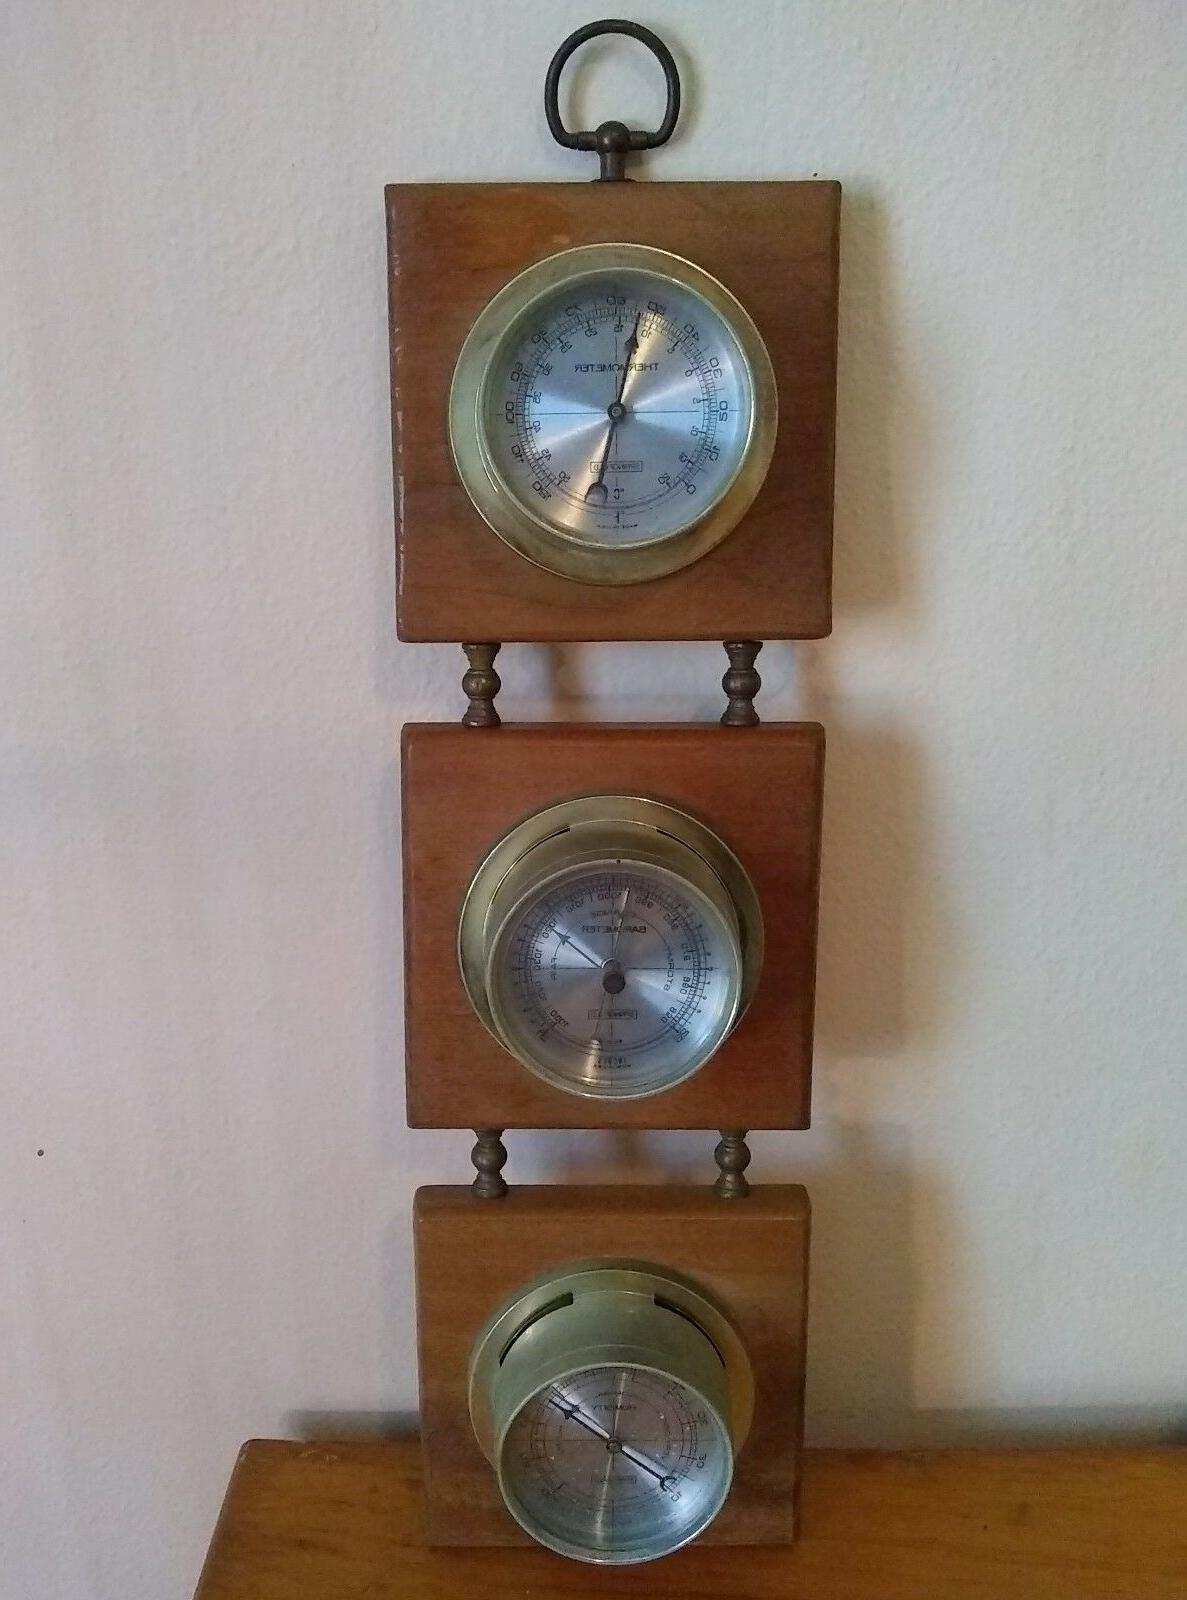 vintage wood and metal weather station thermometer